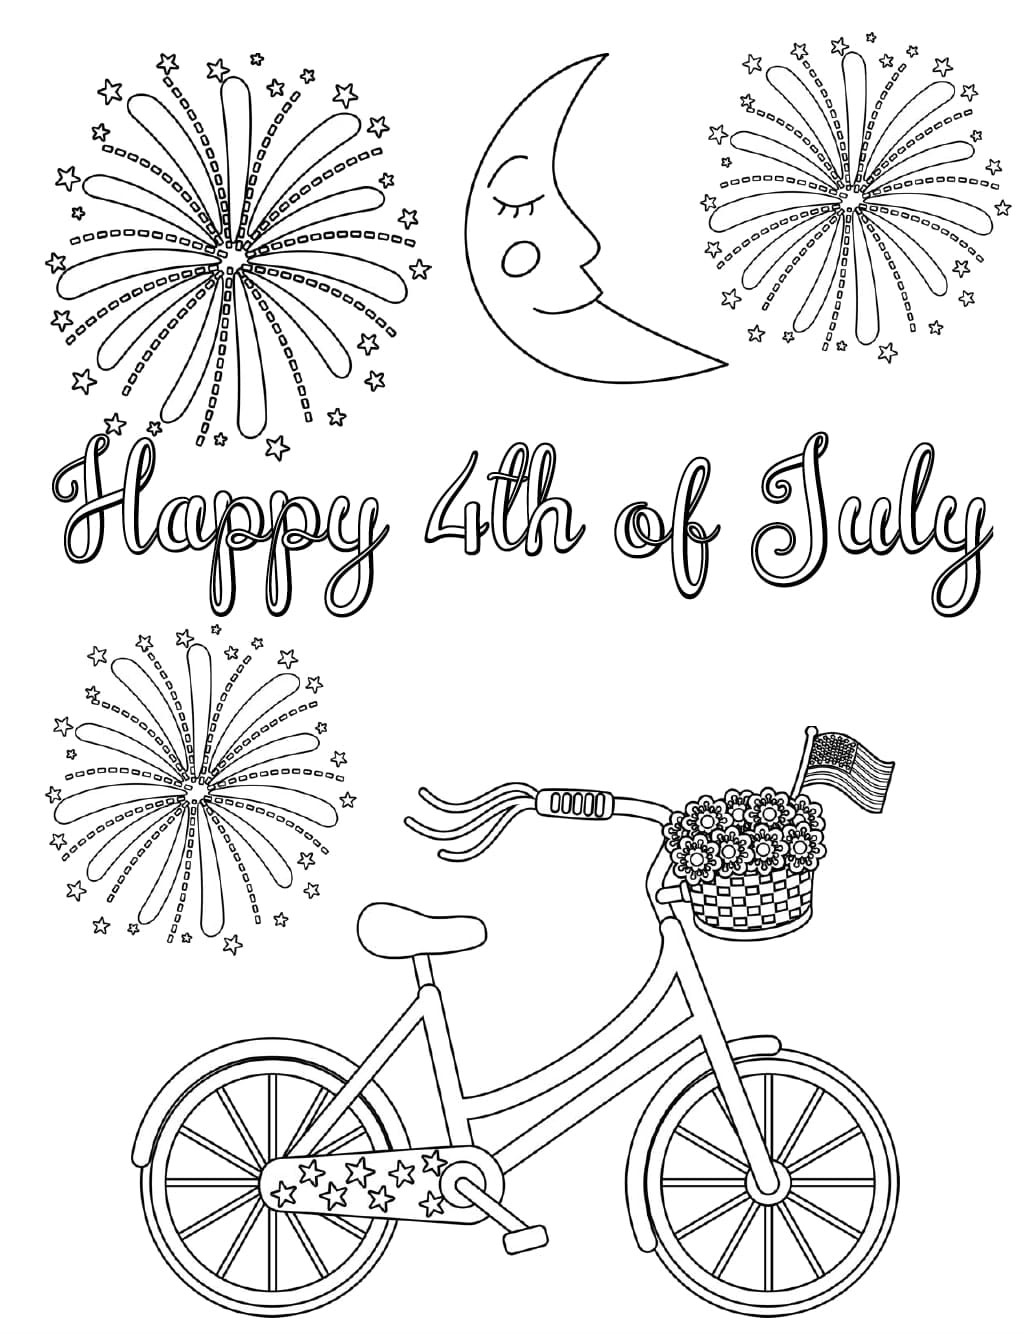 4th Of July Coloring Pages. Independence Day Free Printable